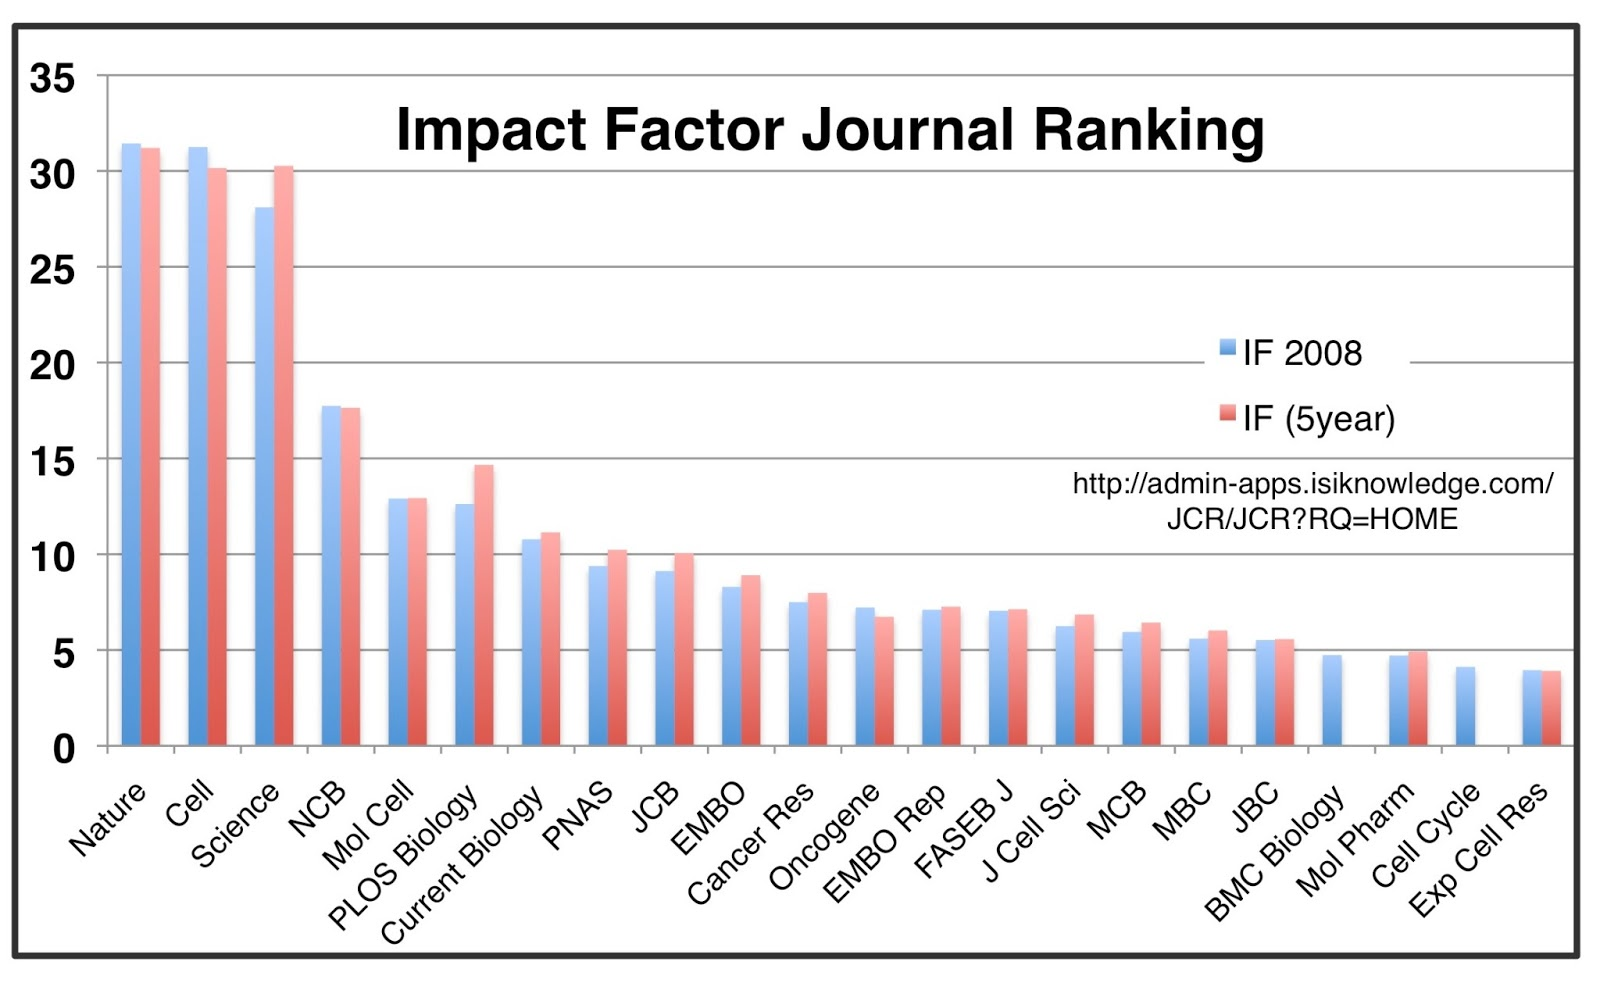 worksheet List Of Factors jan interactive the impact factor season has been a concerted effort to dissuade scientists and all who have an interest in assessing quality of research from using this